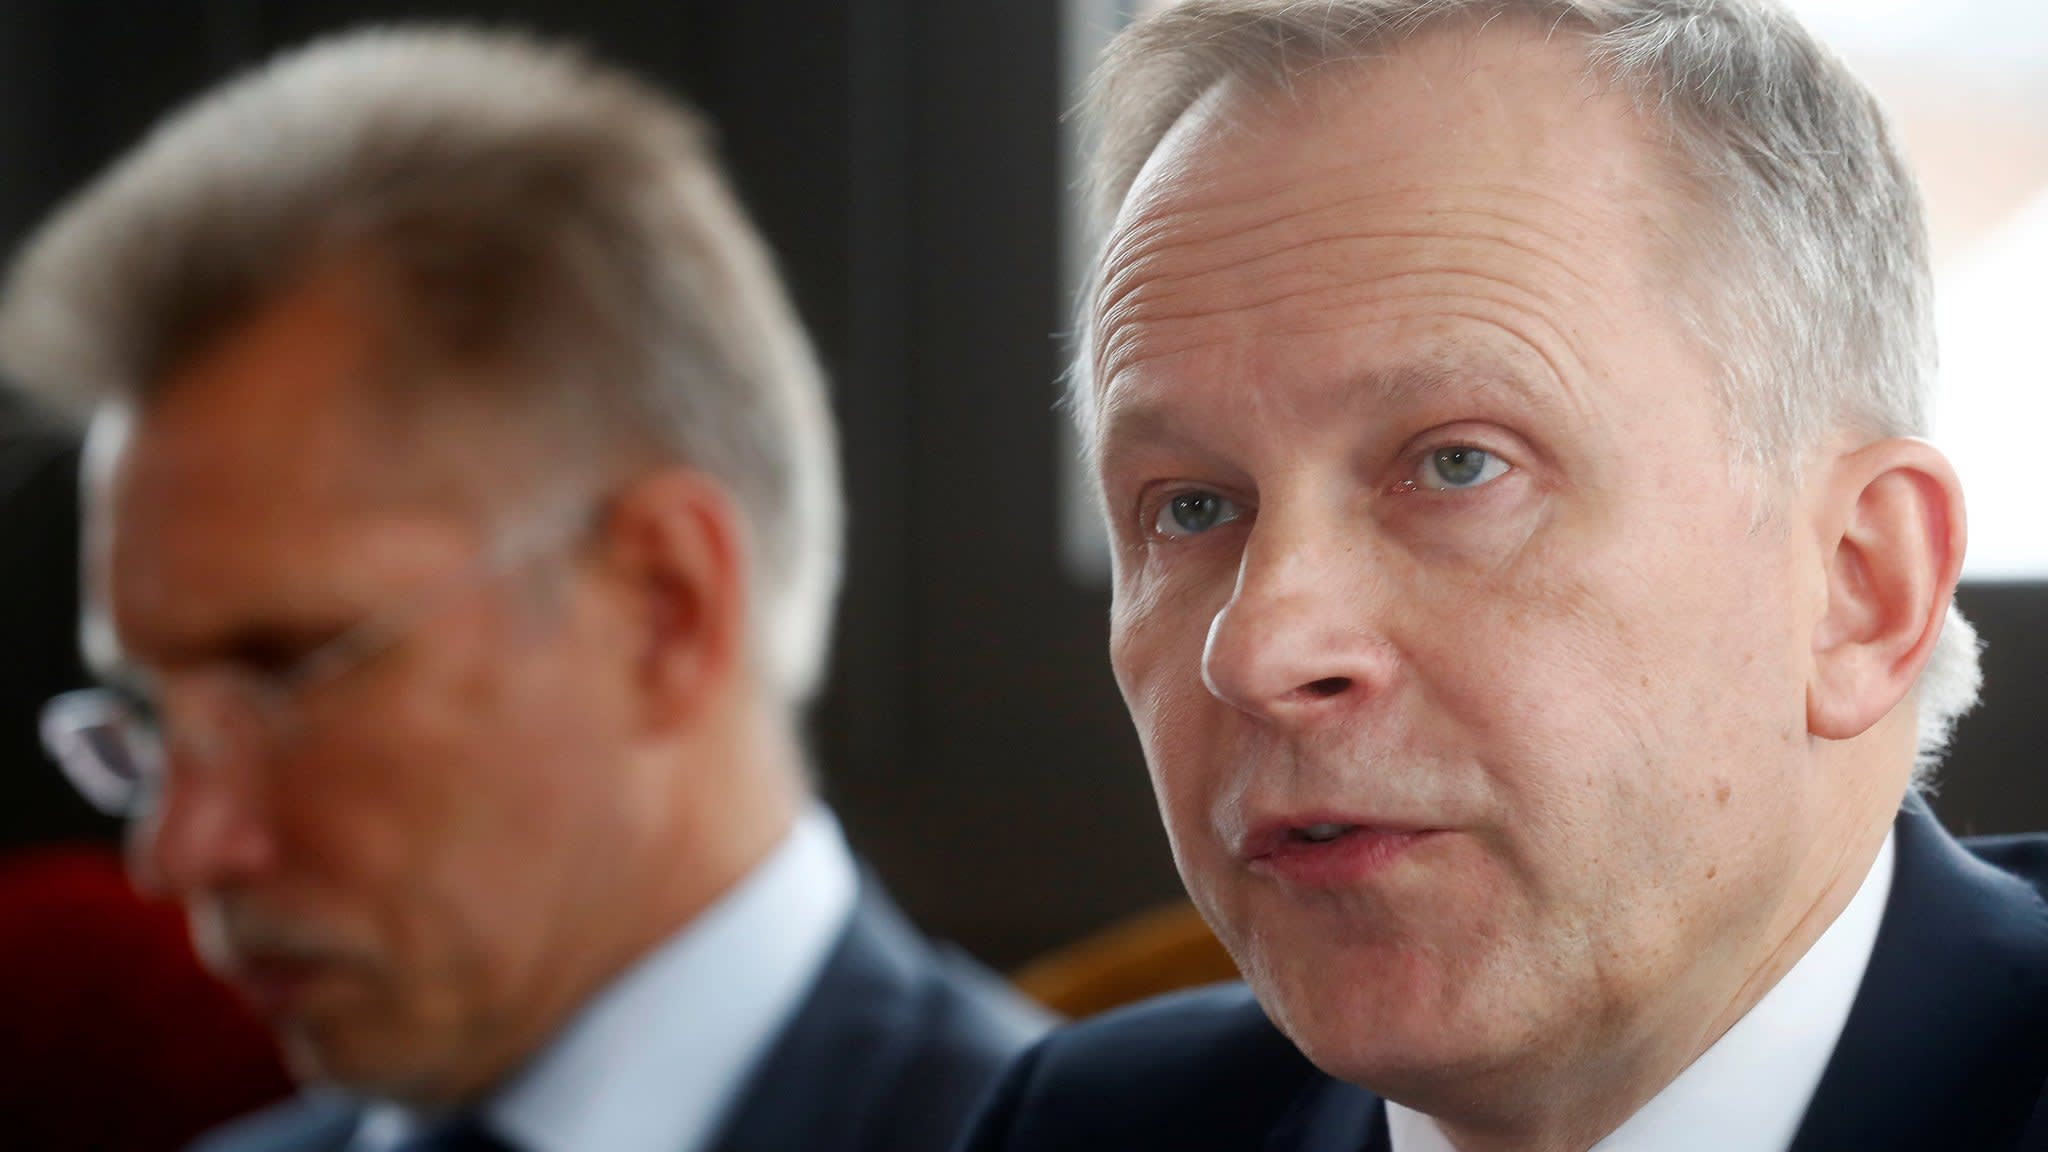 Latvia central bank chief rejects calls to quit over bribery claims